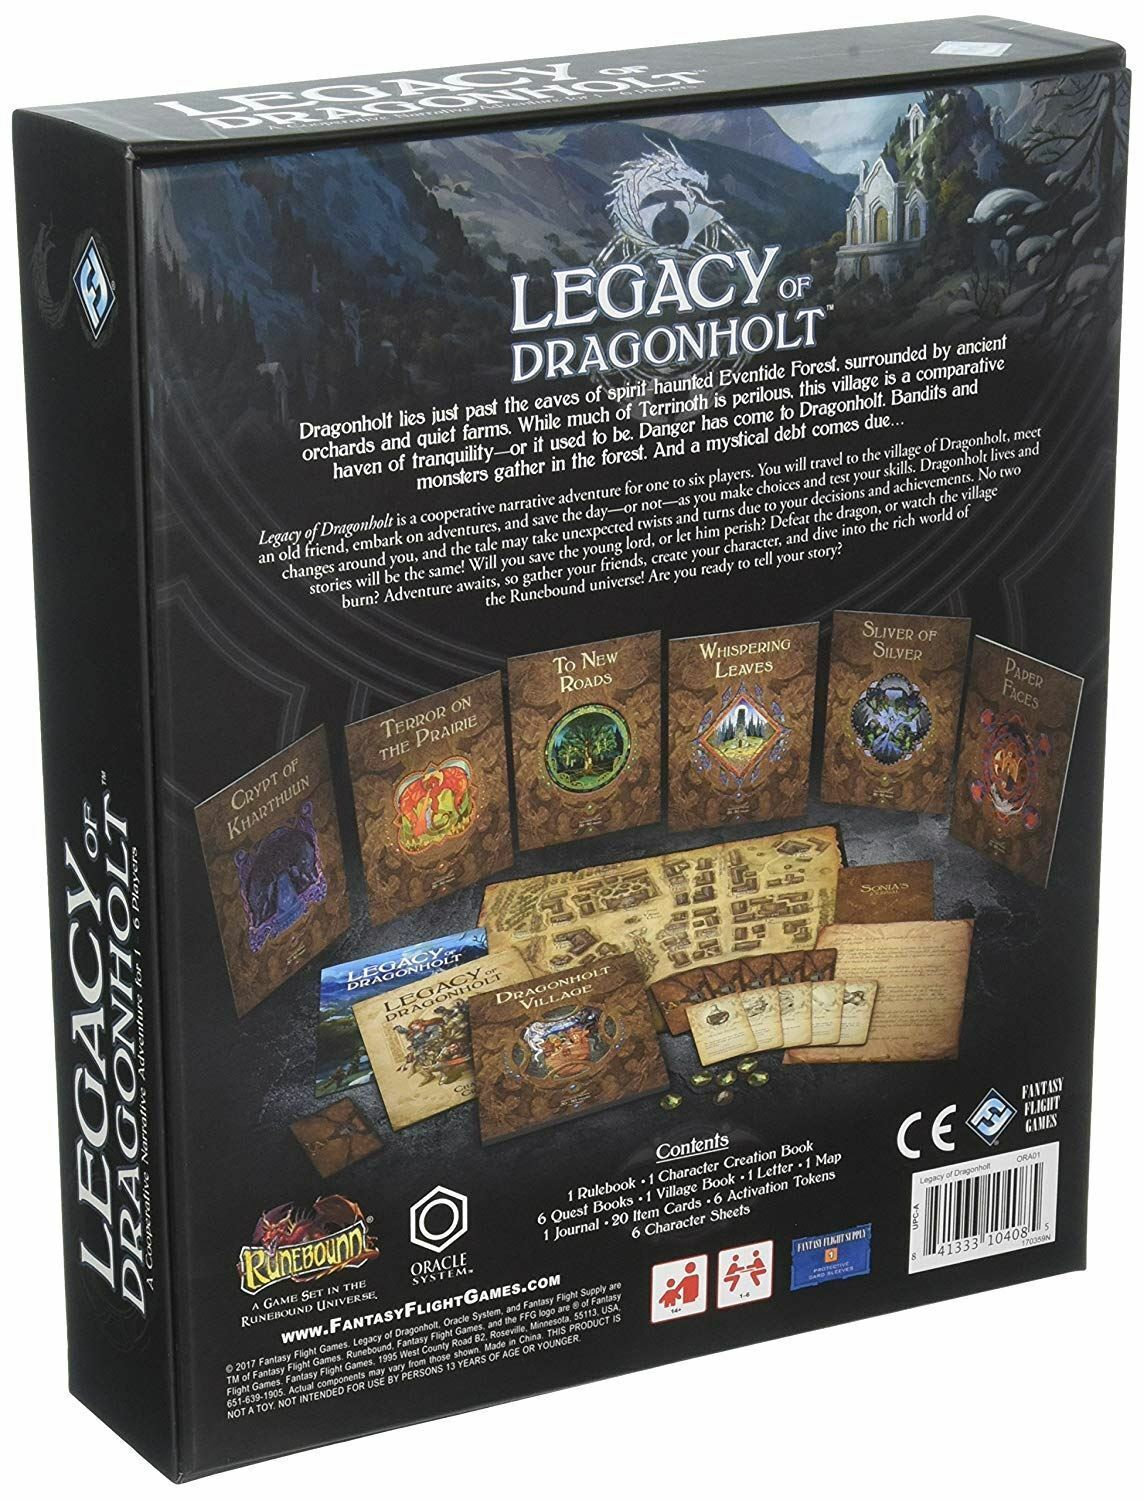 Legacy of dragonholt dragonholt dragonholt Board Game 012a89